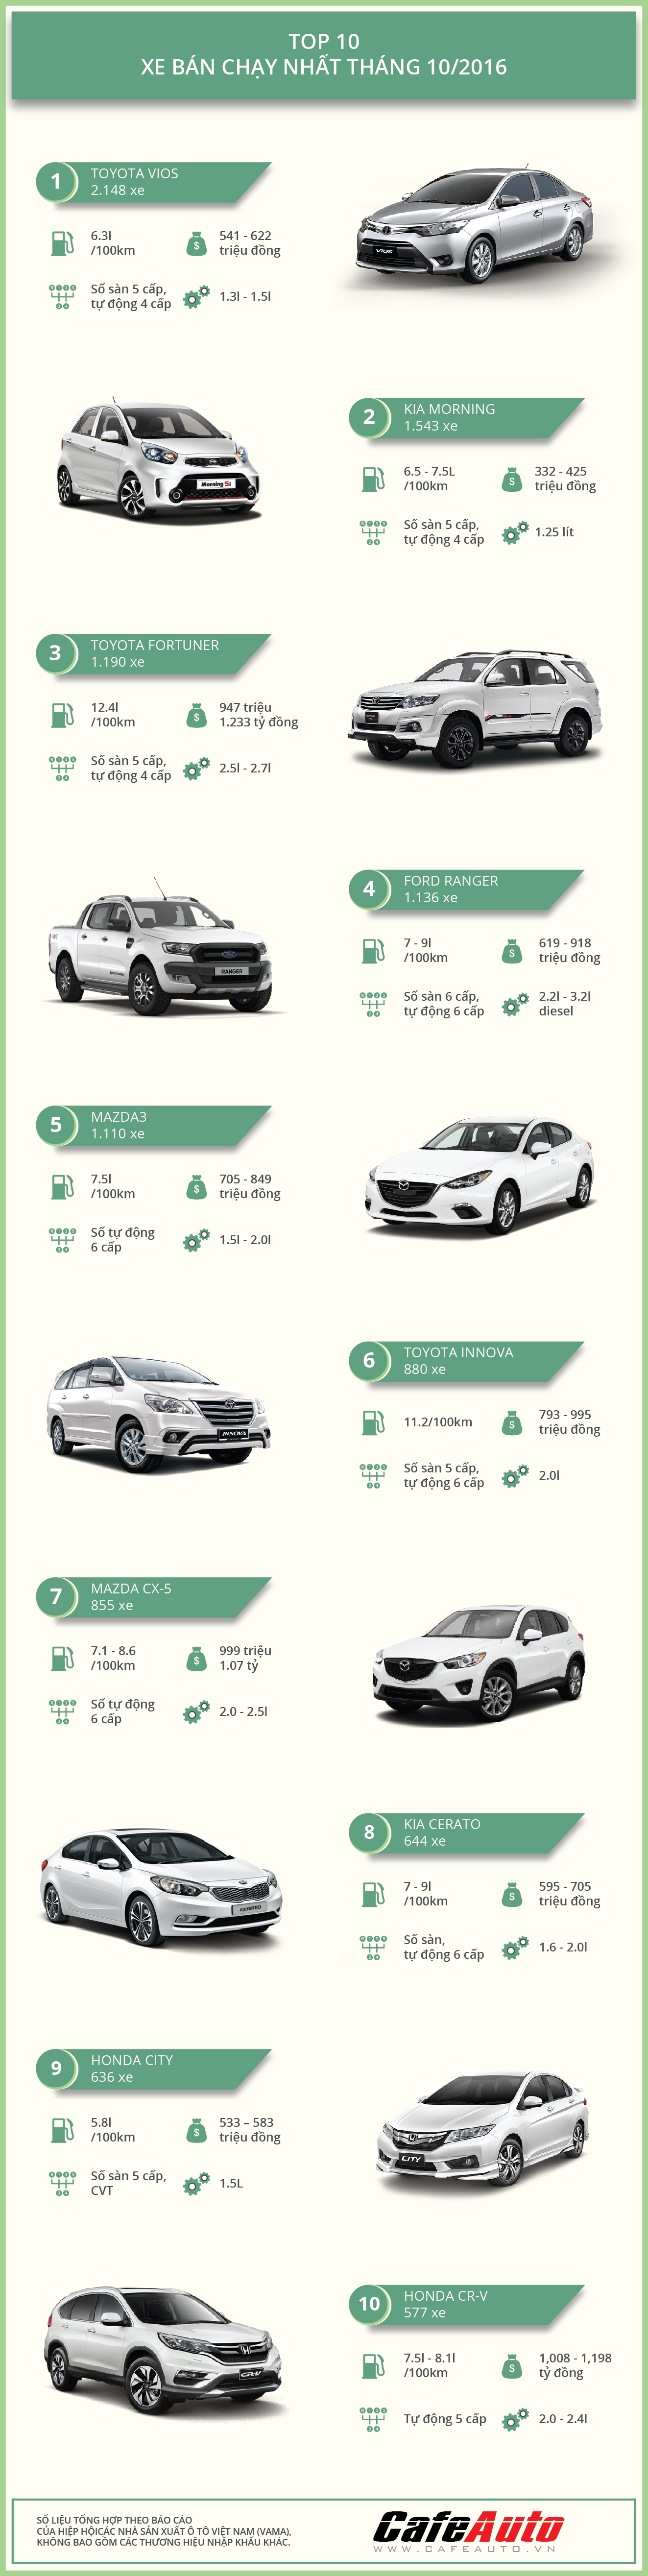 infographic-top-10-xe-ban-chay-nhat-thang-10-2016